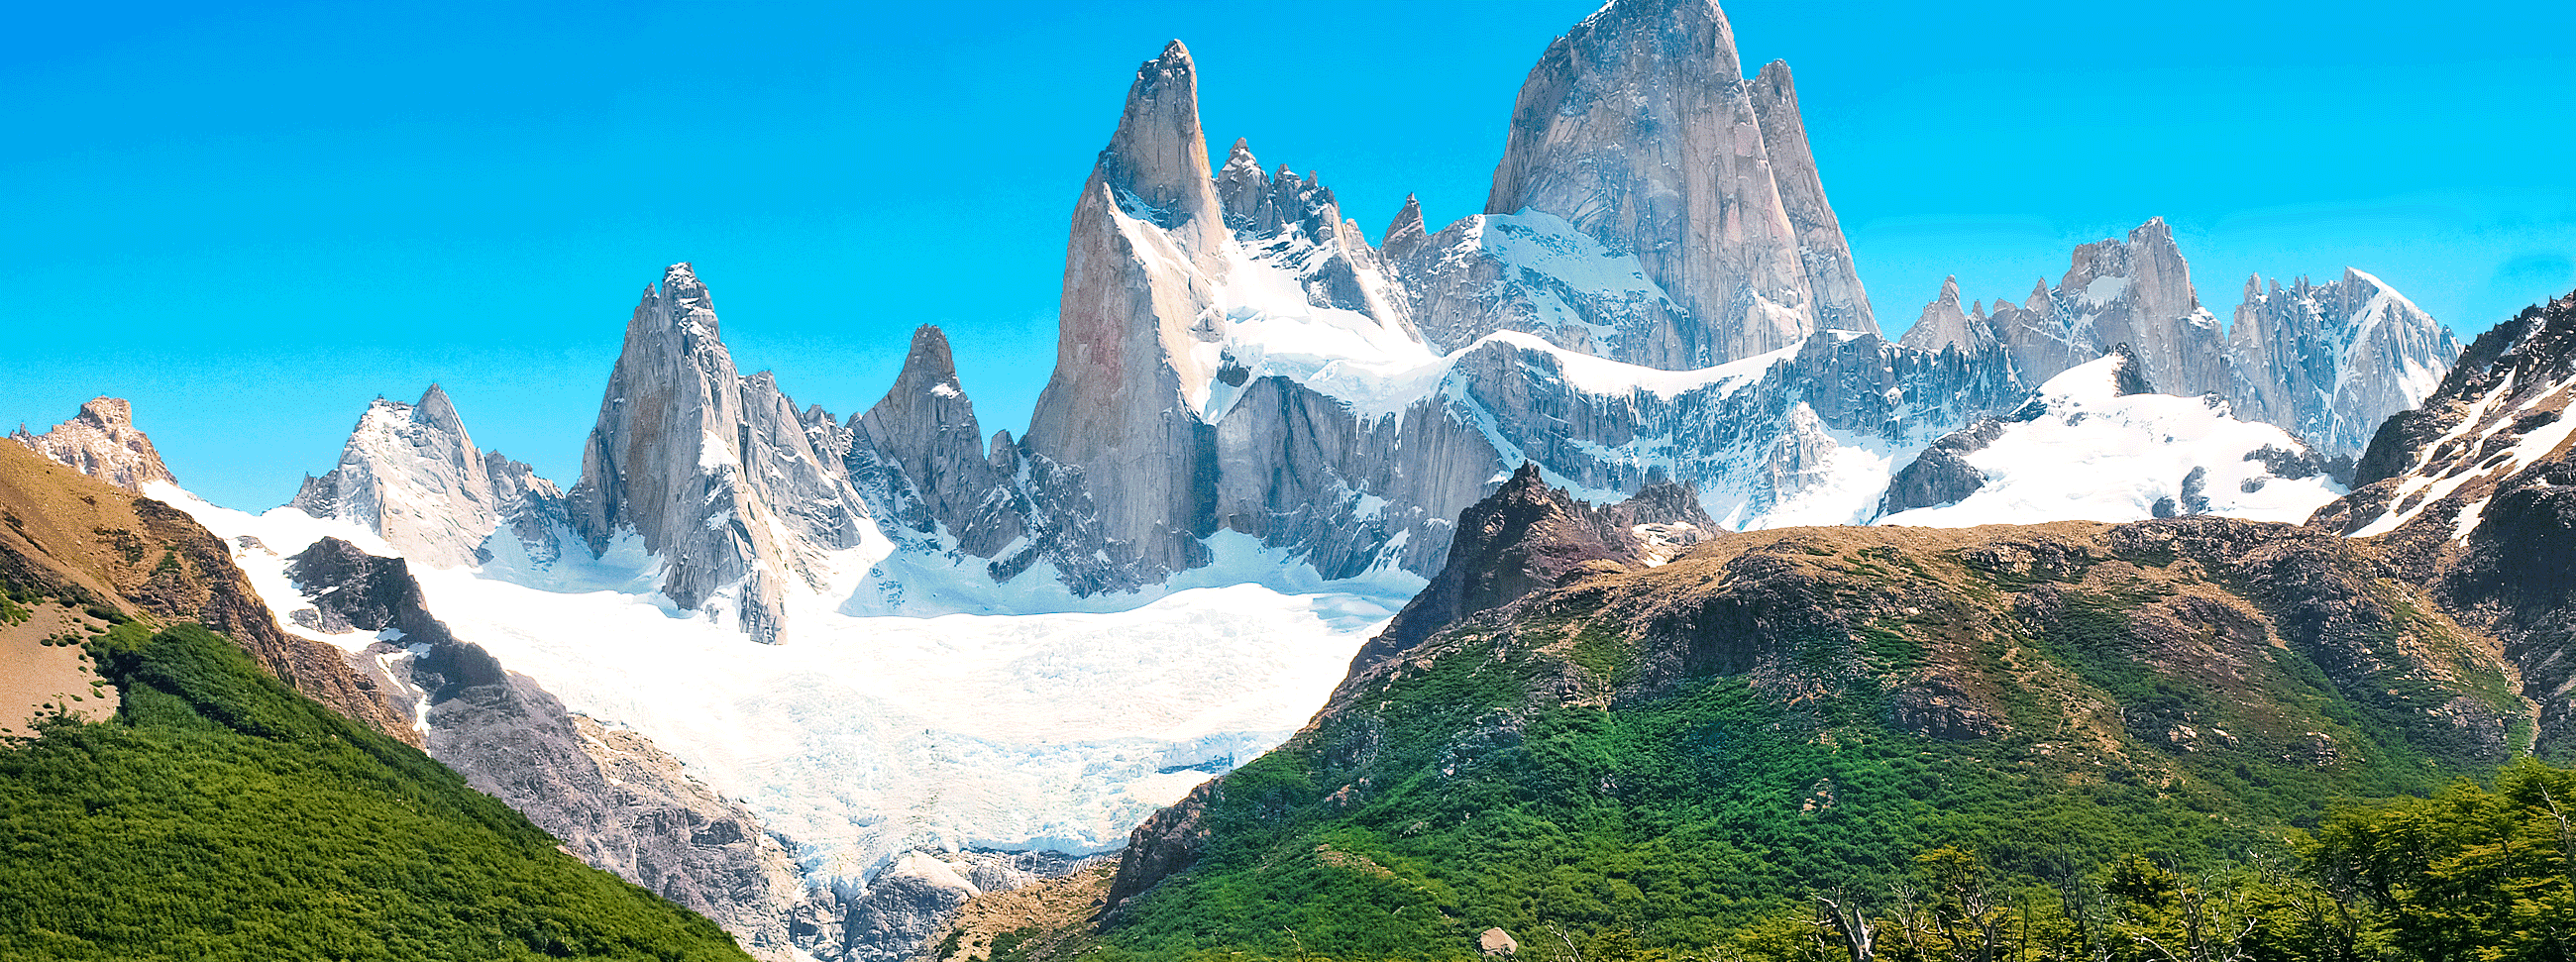 /resource/Images/southamerica/argentina/headerimage/Los-Glaciares-National-Park-Patagonia-Argentina-South-America.png